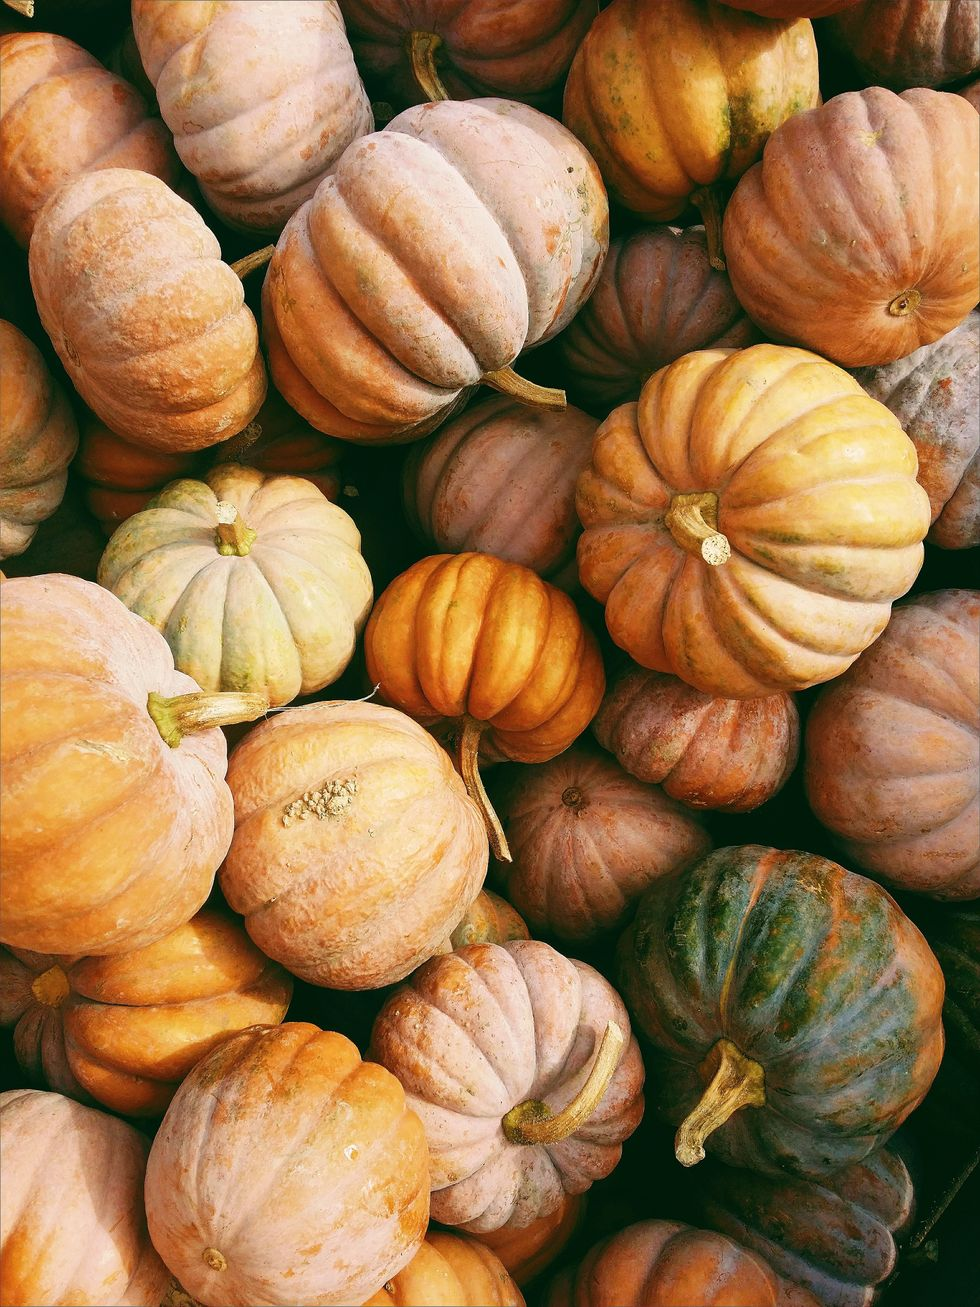 Fall Festivities That You Can Still Safely Enjoy This Year